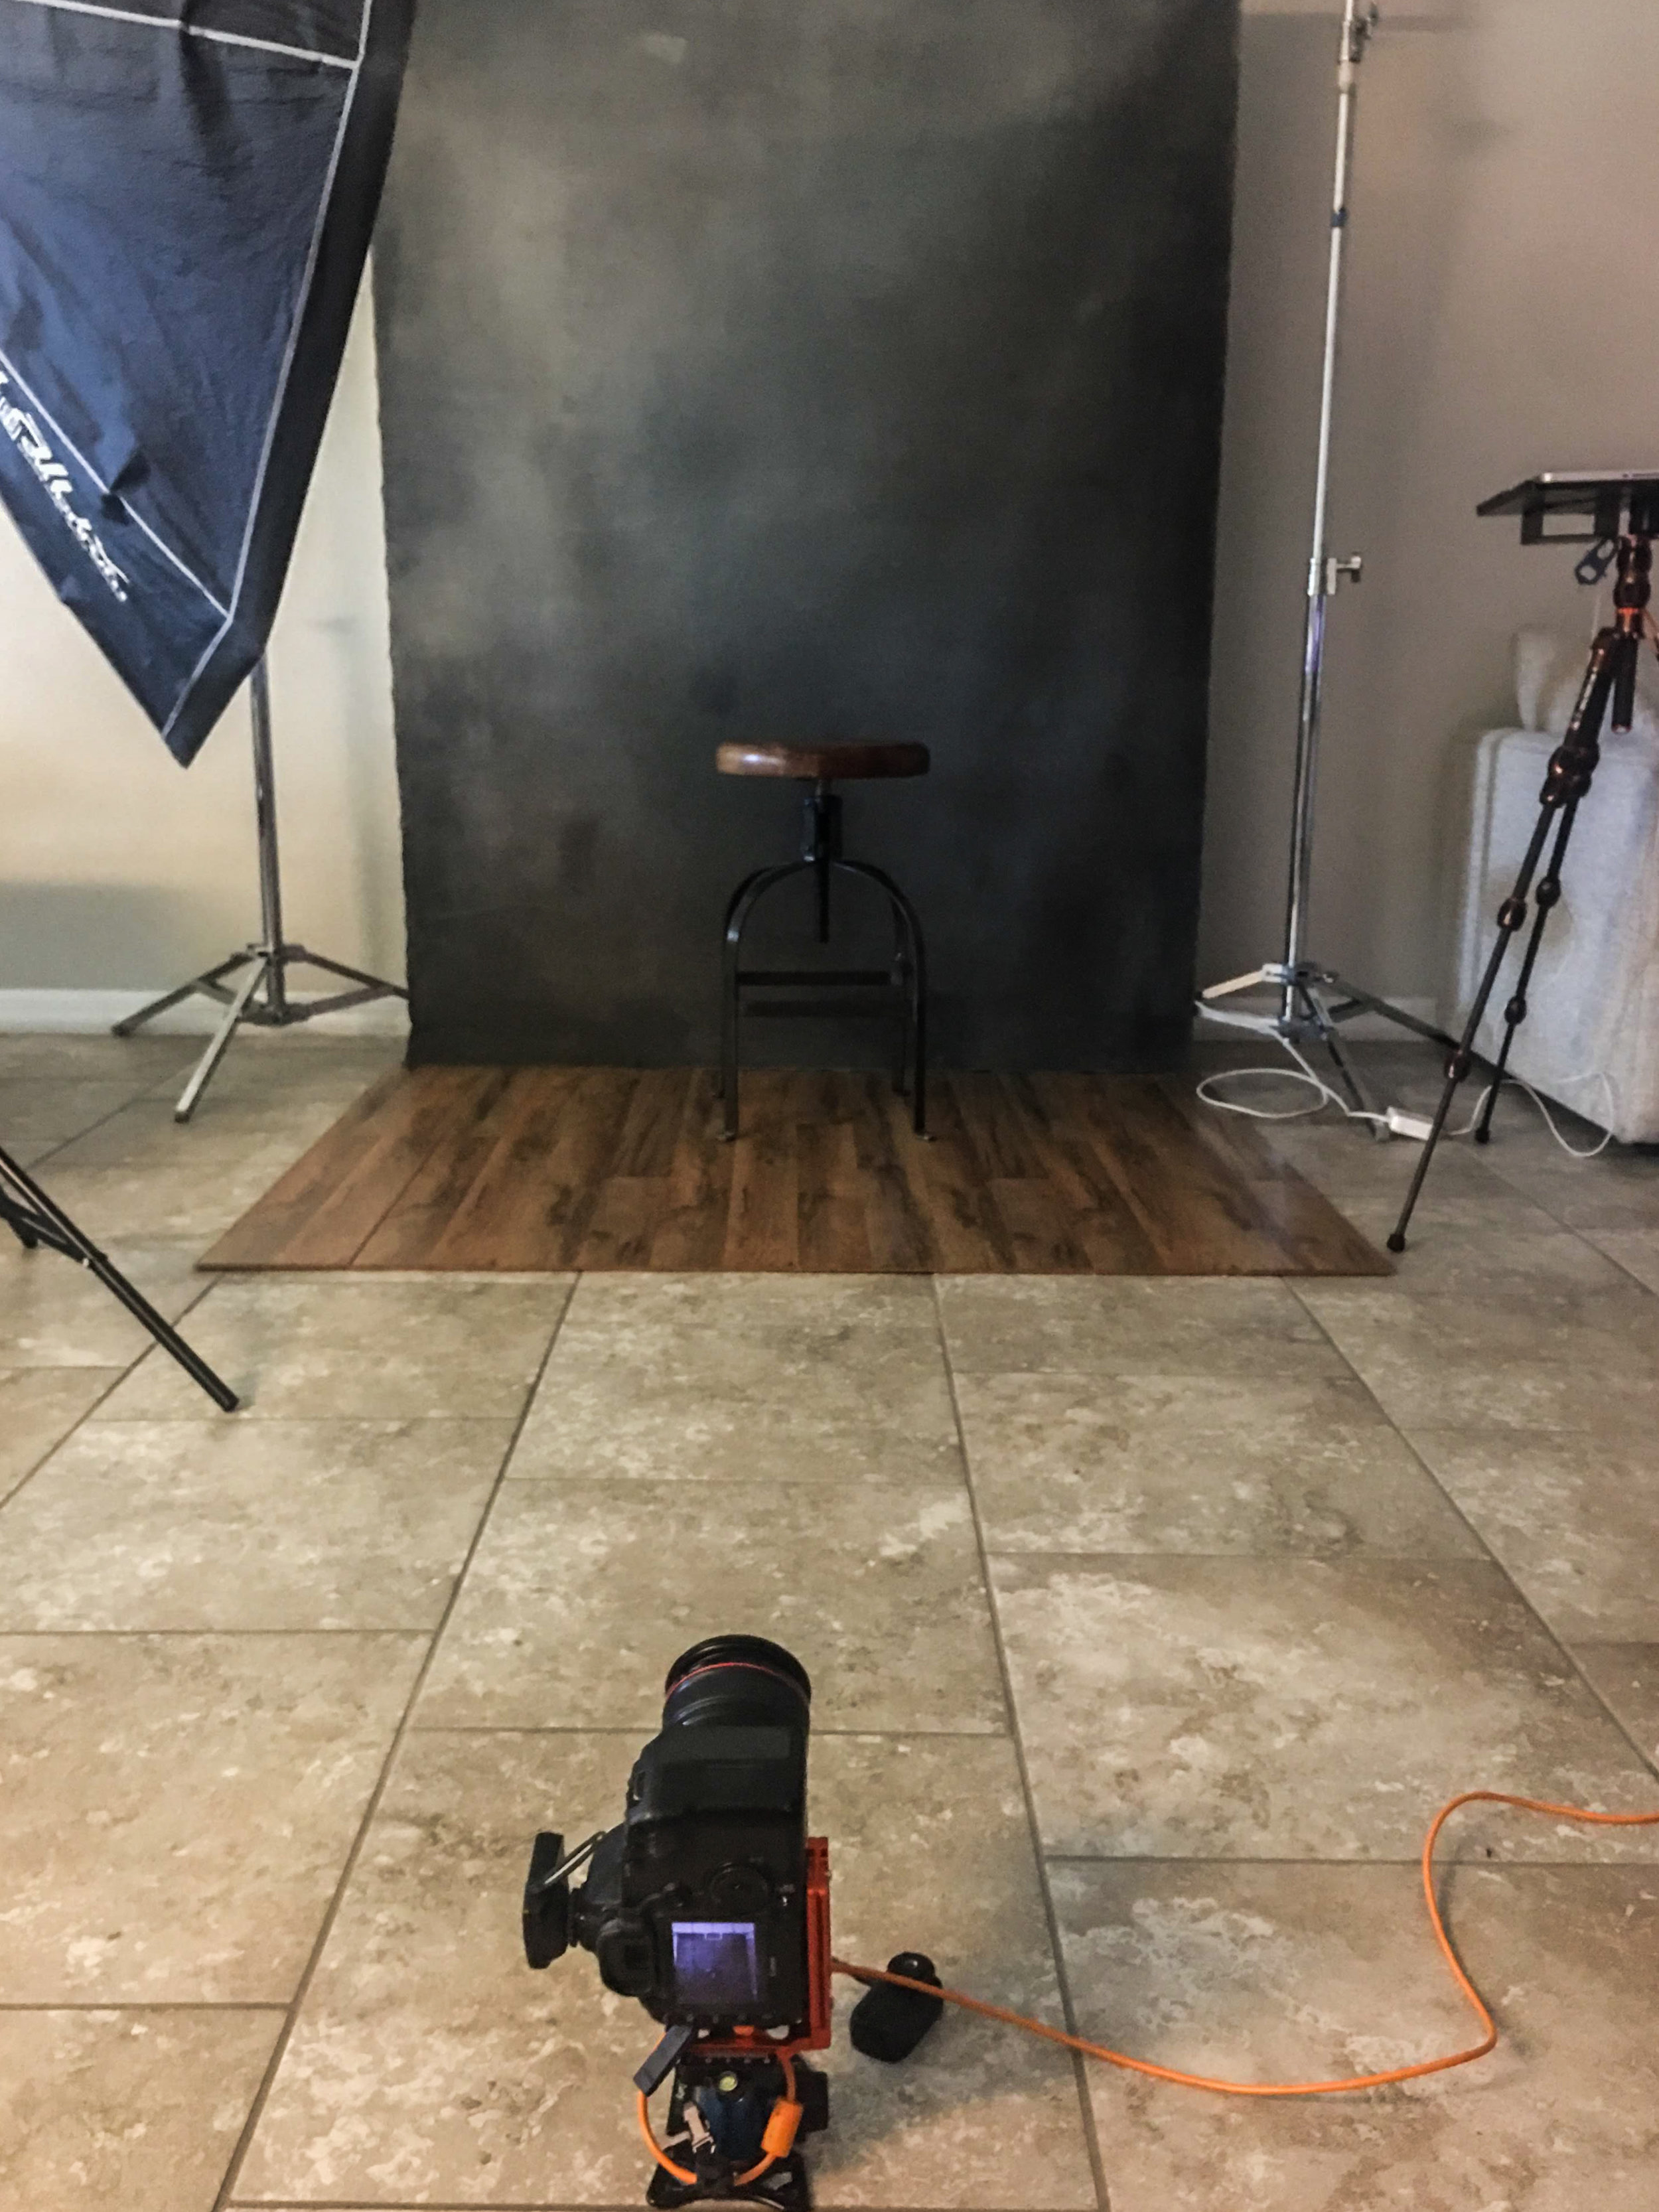 One of the tricks I use to set my focus is placing a light stand where I'll be standing, set my focus, lock it, then replace the light stand with myself.